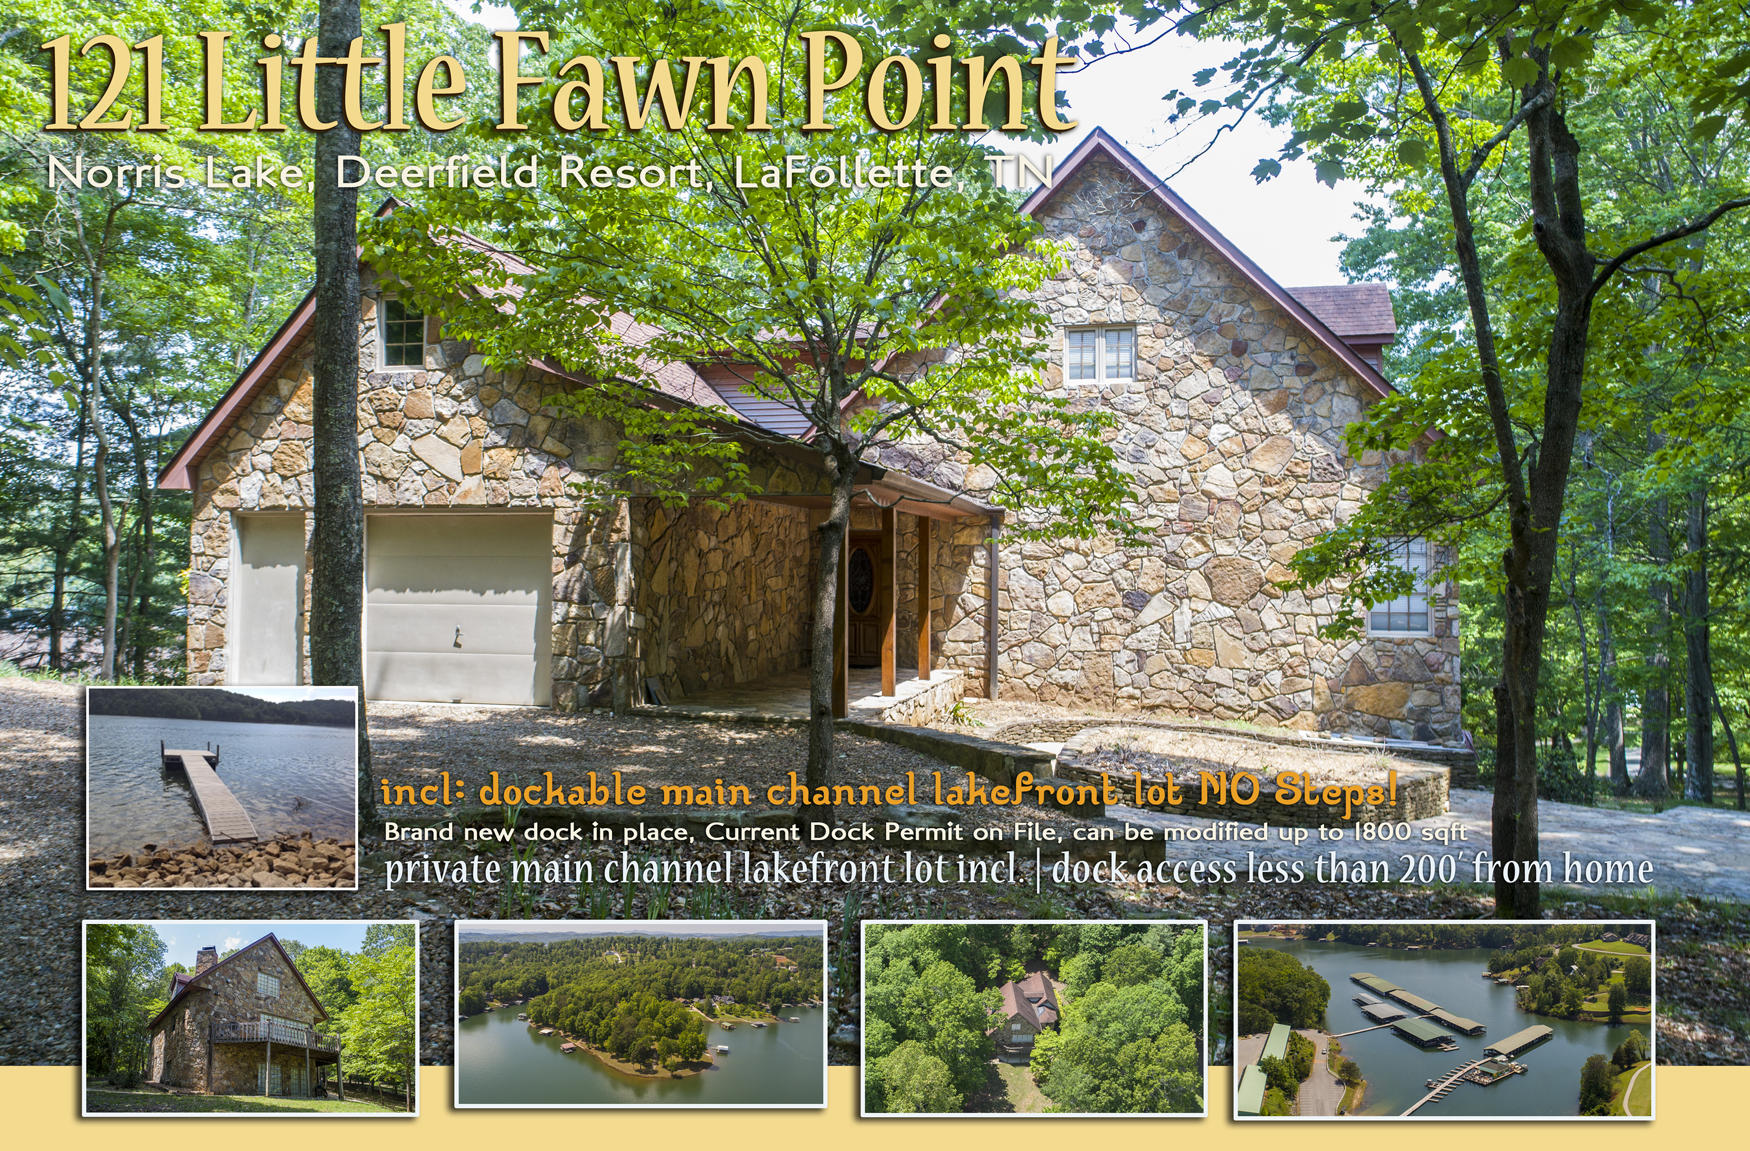 121 Little Fawn Point: